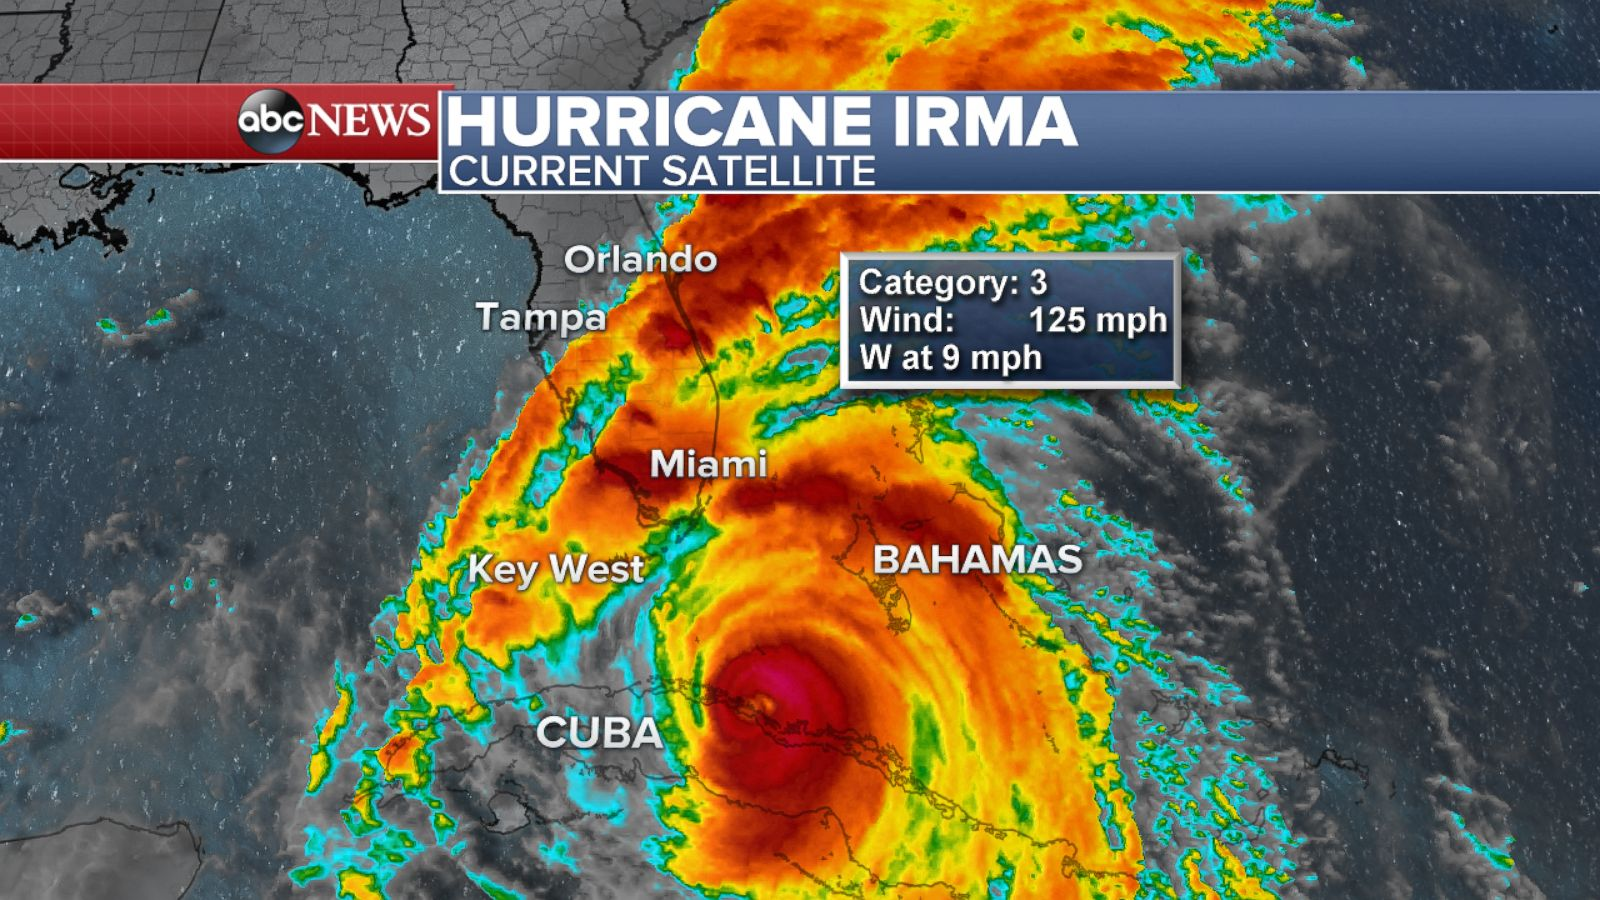 PHOTO Hurricane Irma Current Satellite Map ABC News - Current satellite